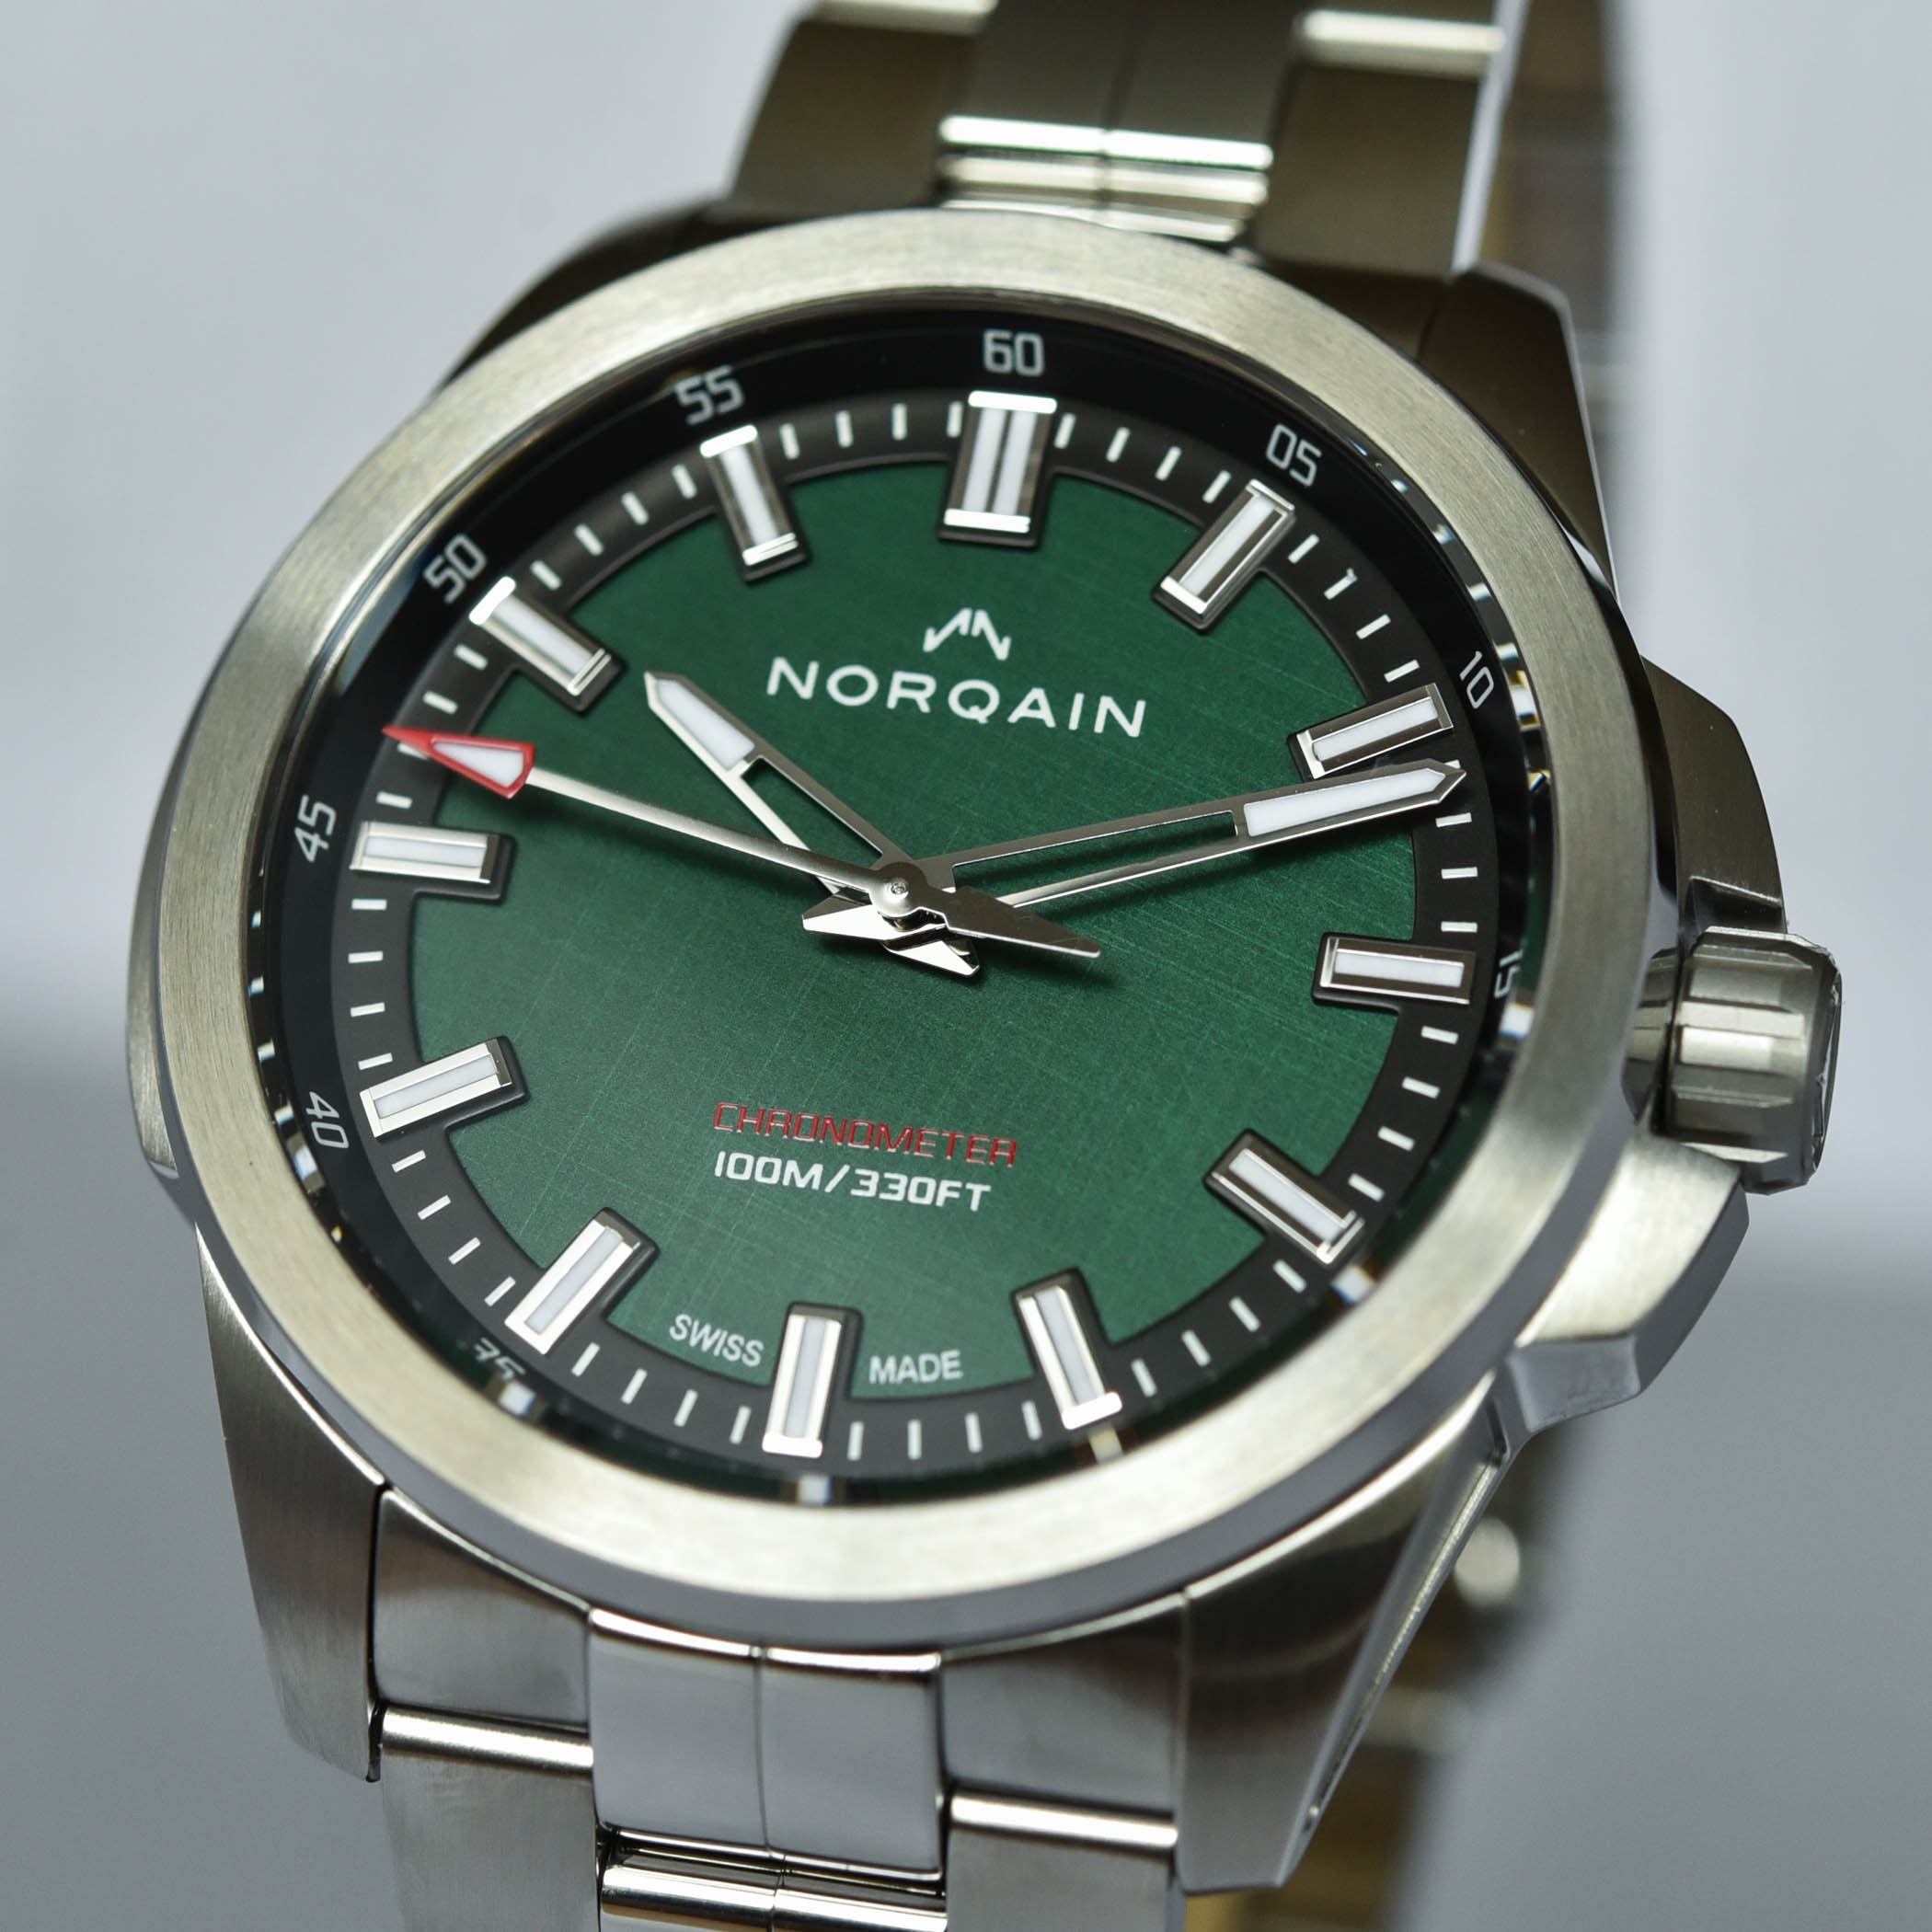 Norqain Independence 20 Kenissi Manufacture Movement